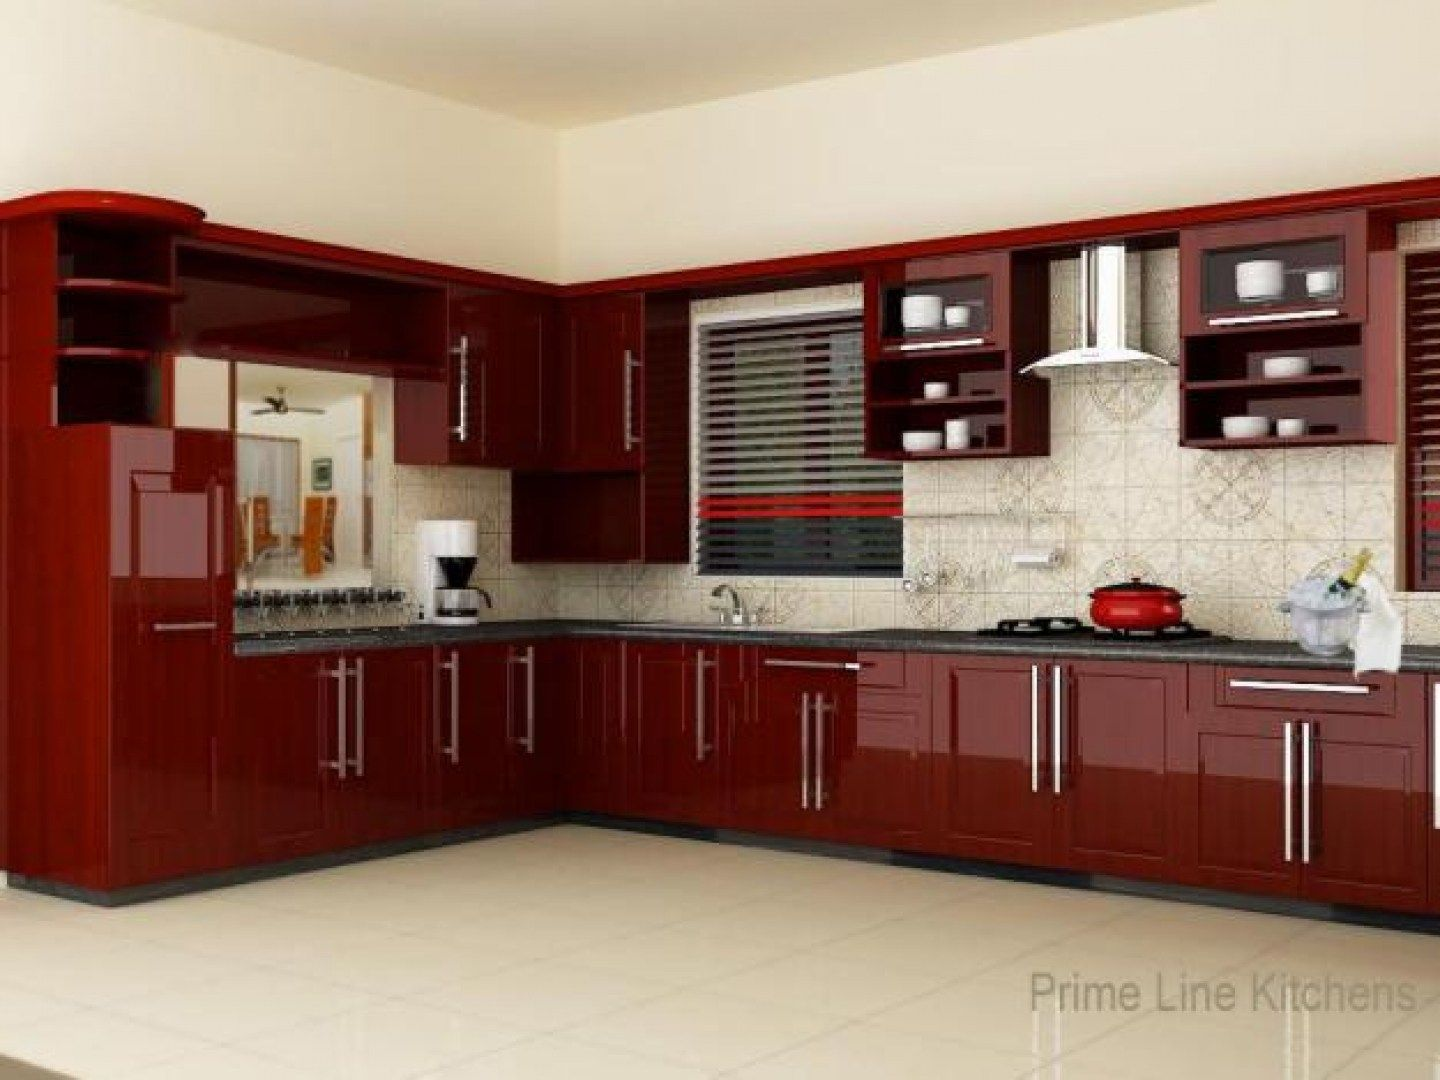 Kitchen design ideas kitchen woodwork designs hyderabad for Kitchen door design